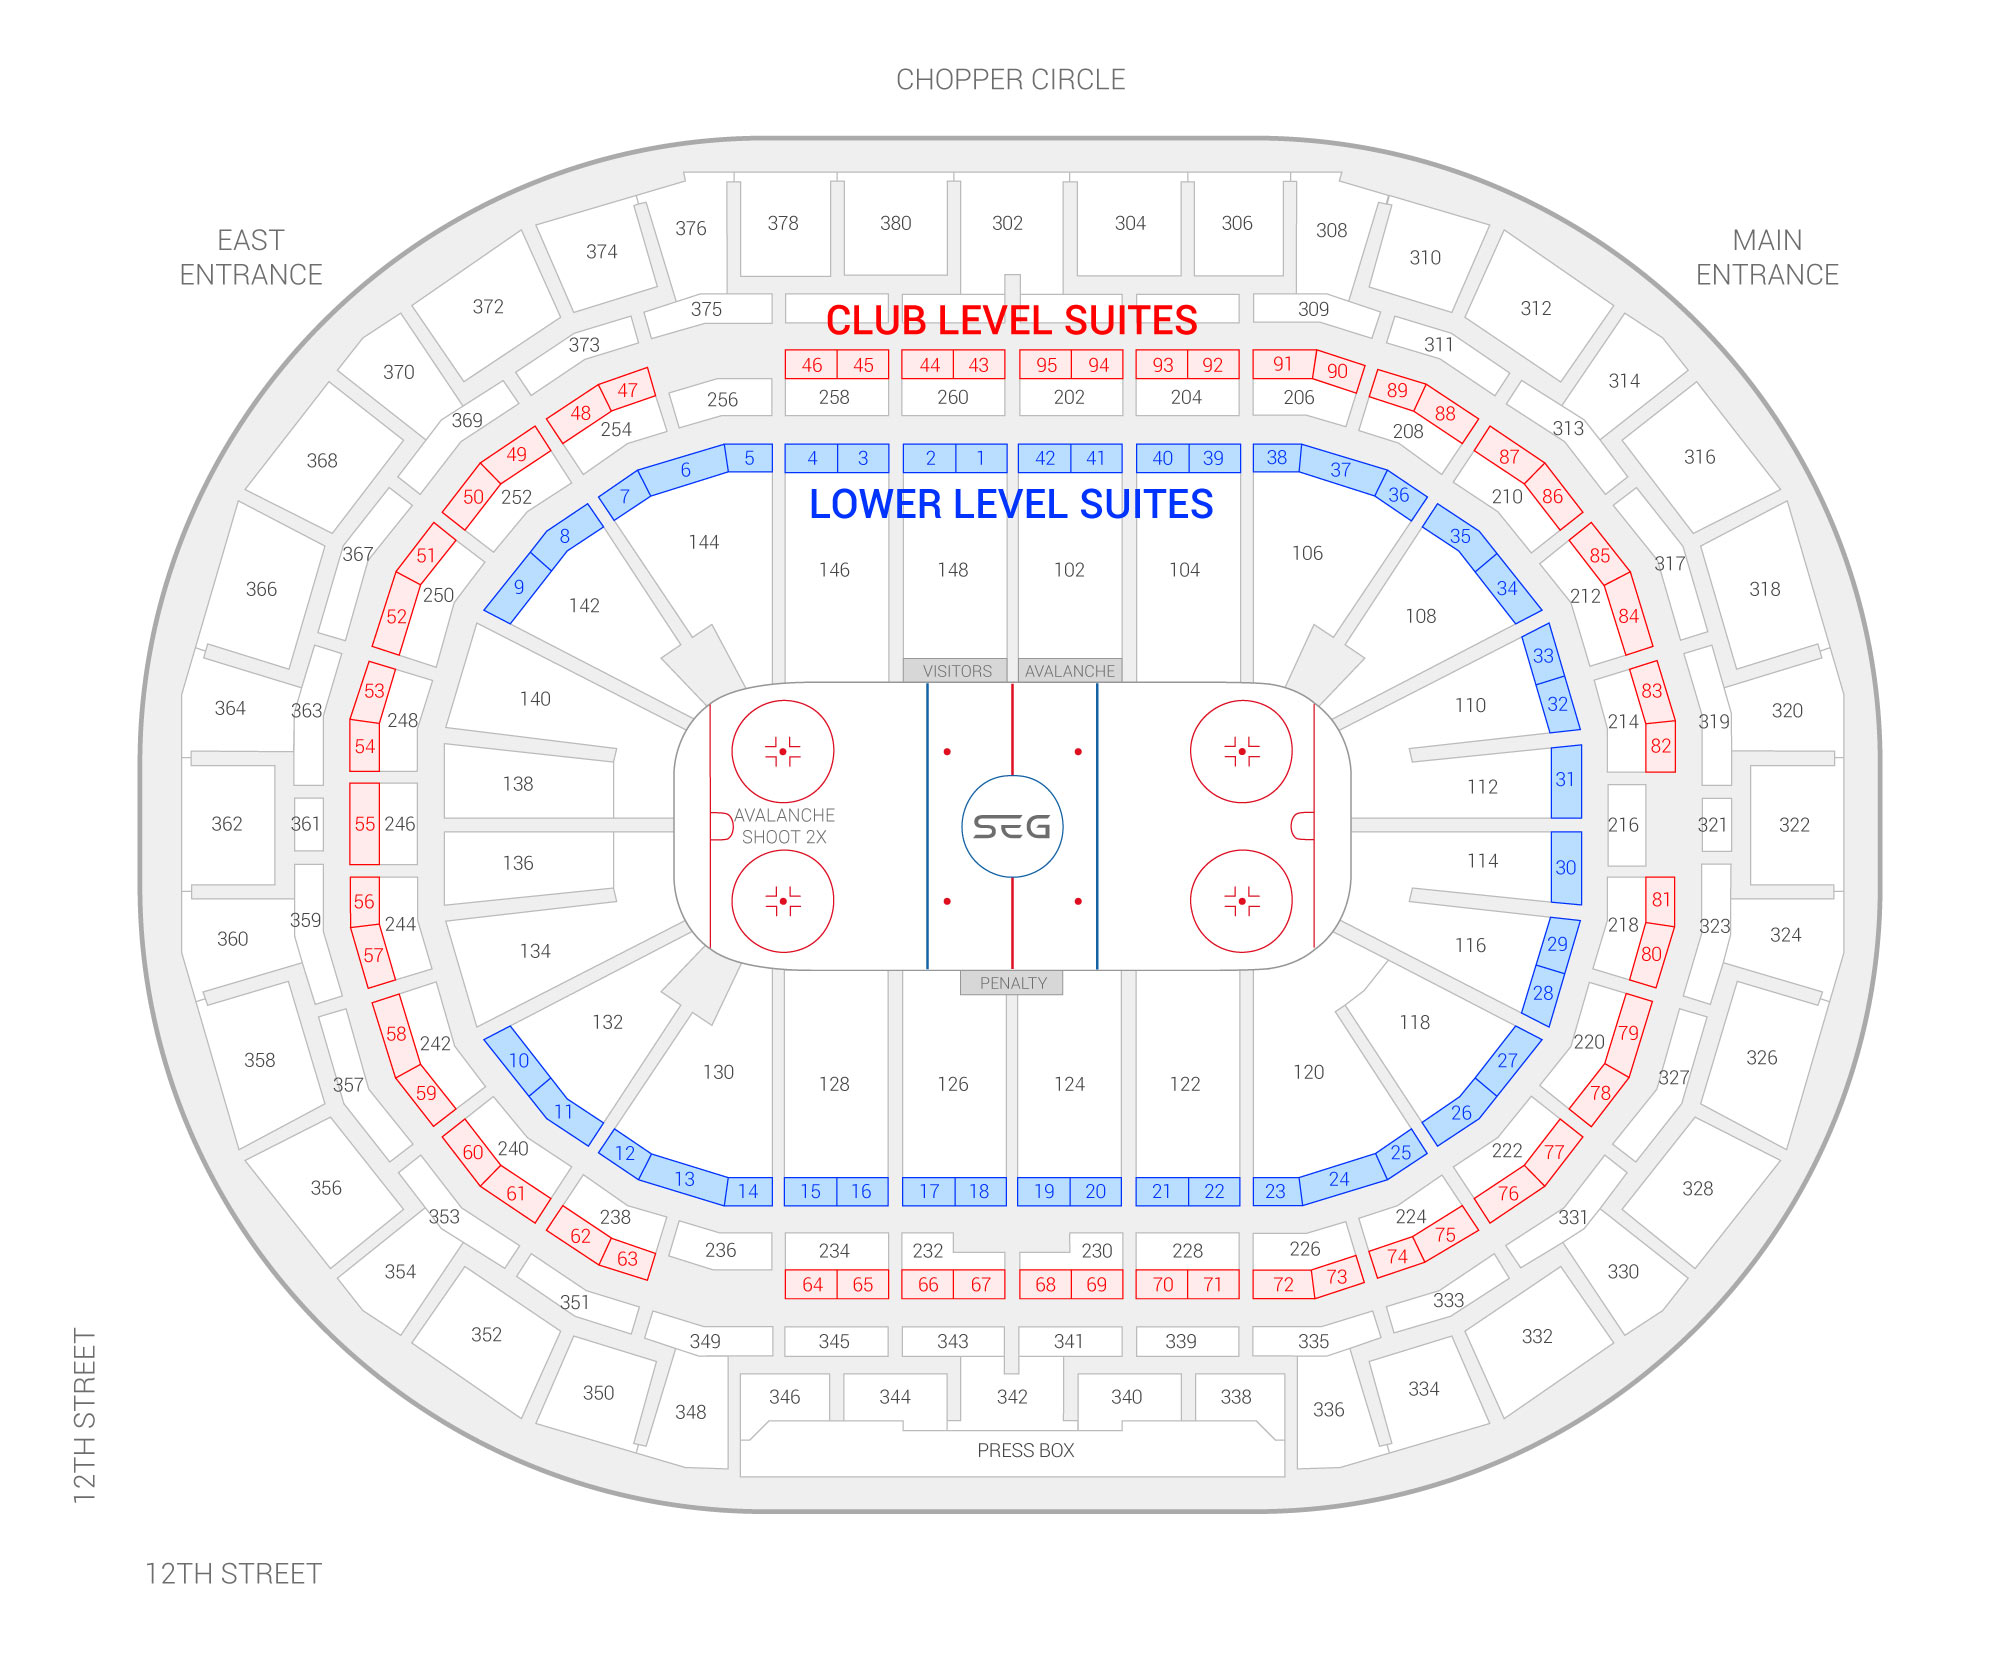 Ball Arena / Colorado Avalanche Suite Map and Seating Chart